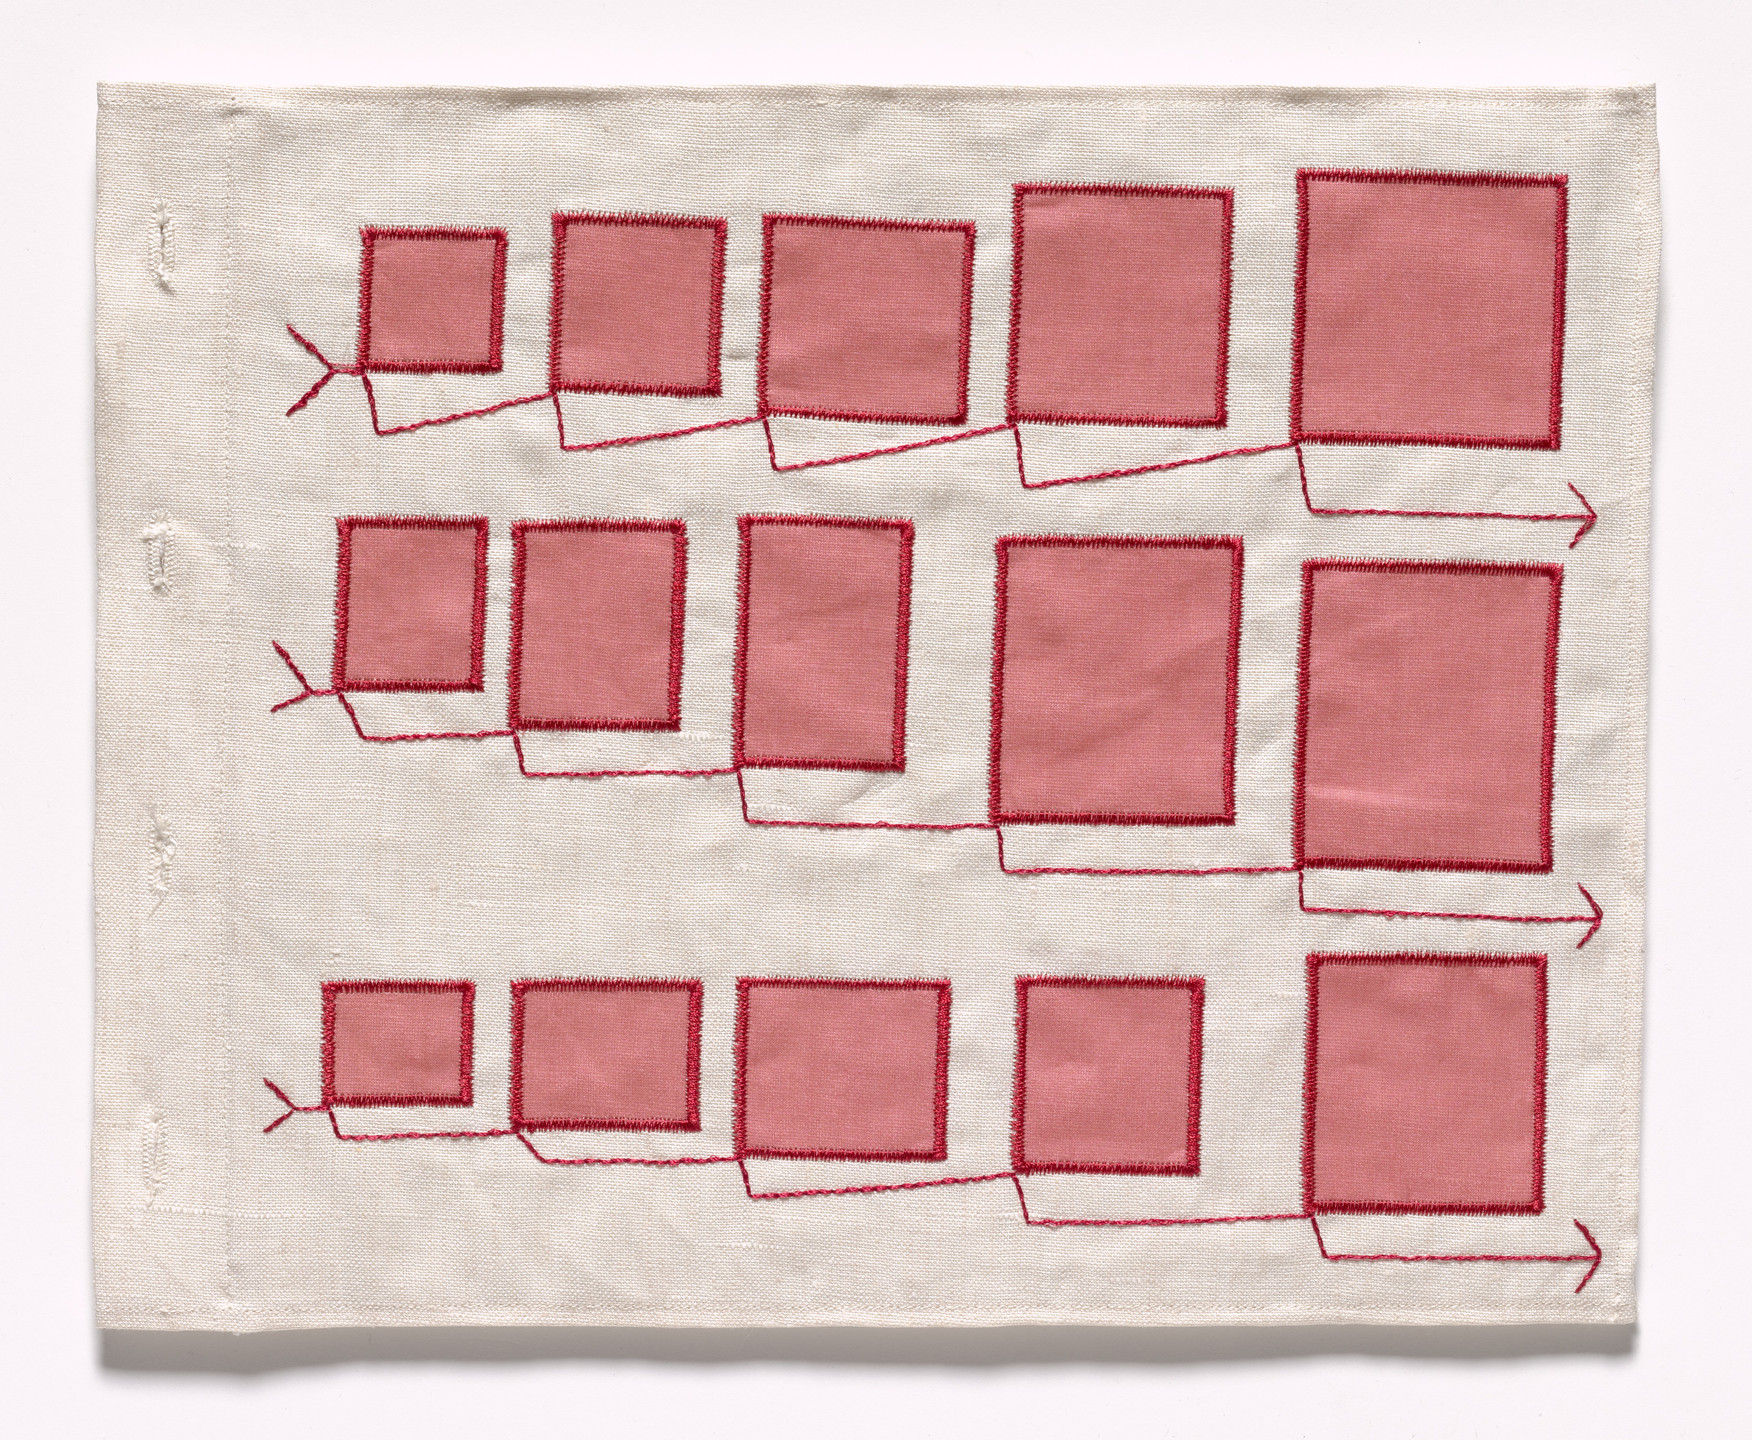 Louise Bourgeois. Untitled, no. 7 of 34, from the illustrated book, Ode à l'Oubli. 2004